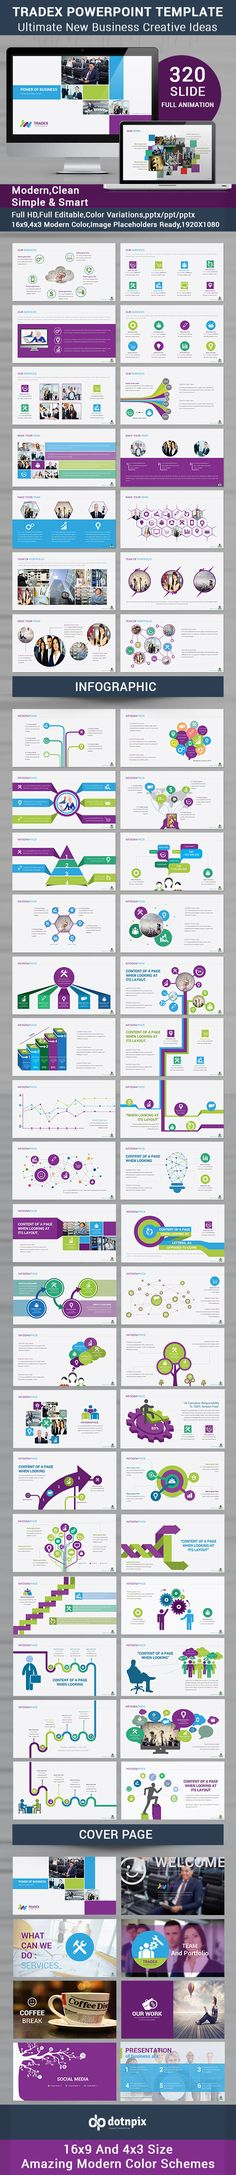 Tradex Powerpoint Template #powerpoint #powerpointtemplate #presentation Download: http://graphicriver.net/item/tradex-powerpoint-template/10167617?ref=ksioks